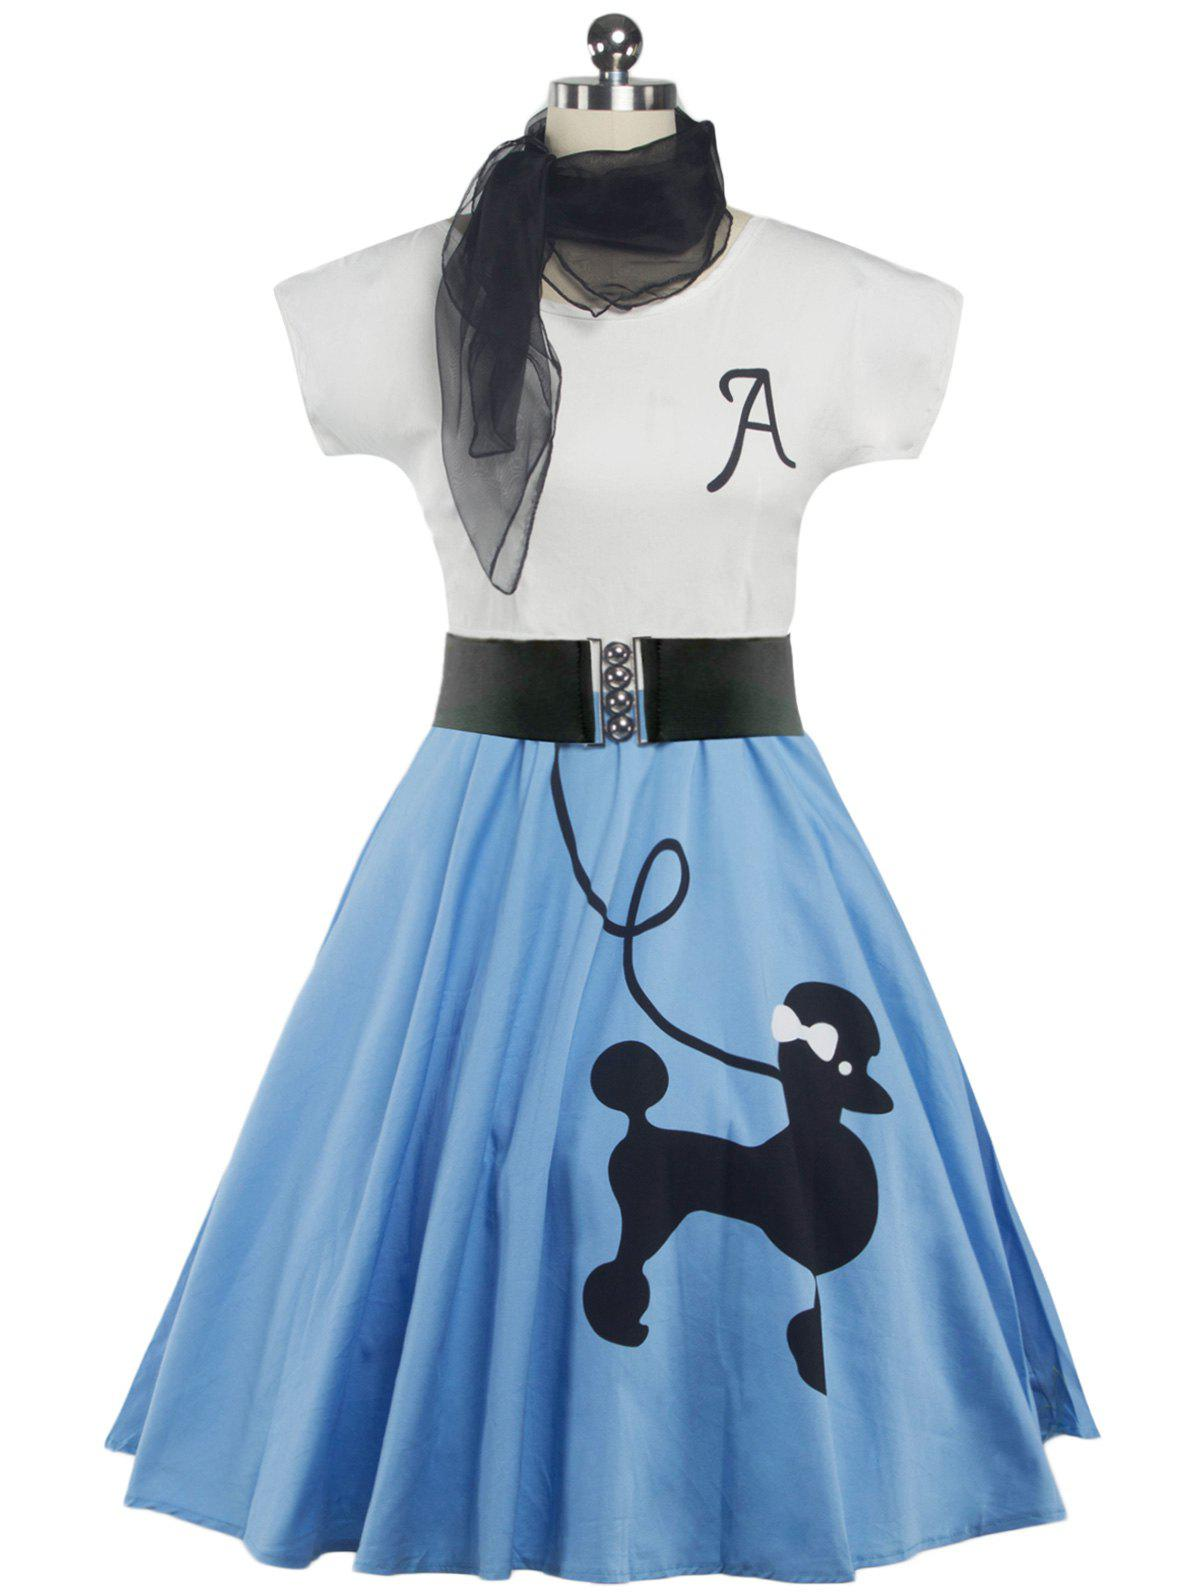 Retro Poodle Print High Waist Skater Dress - LIGHT BLUE L